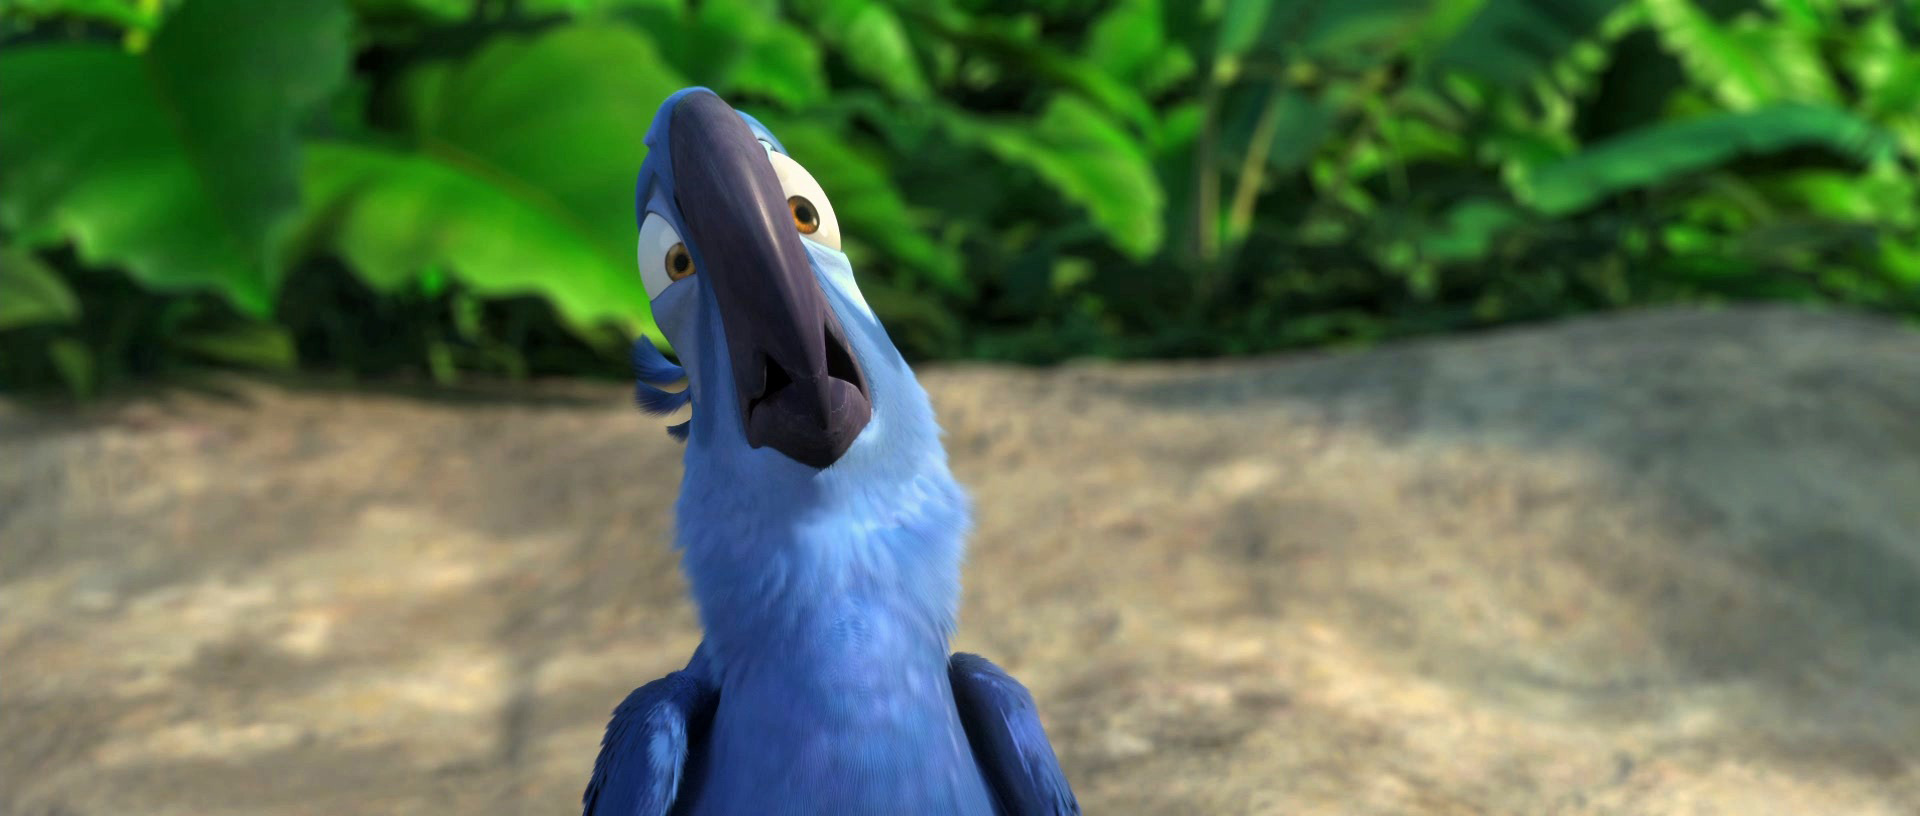 Blu the Macaw from the movie Rio wallpaper - Click picture for high